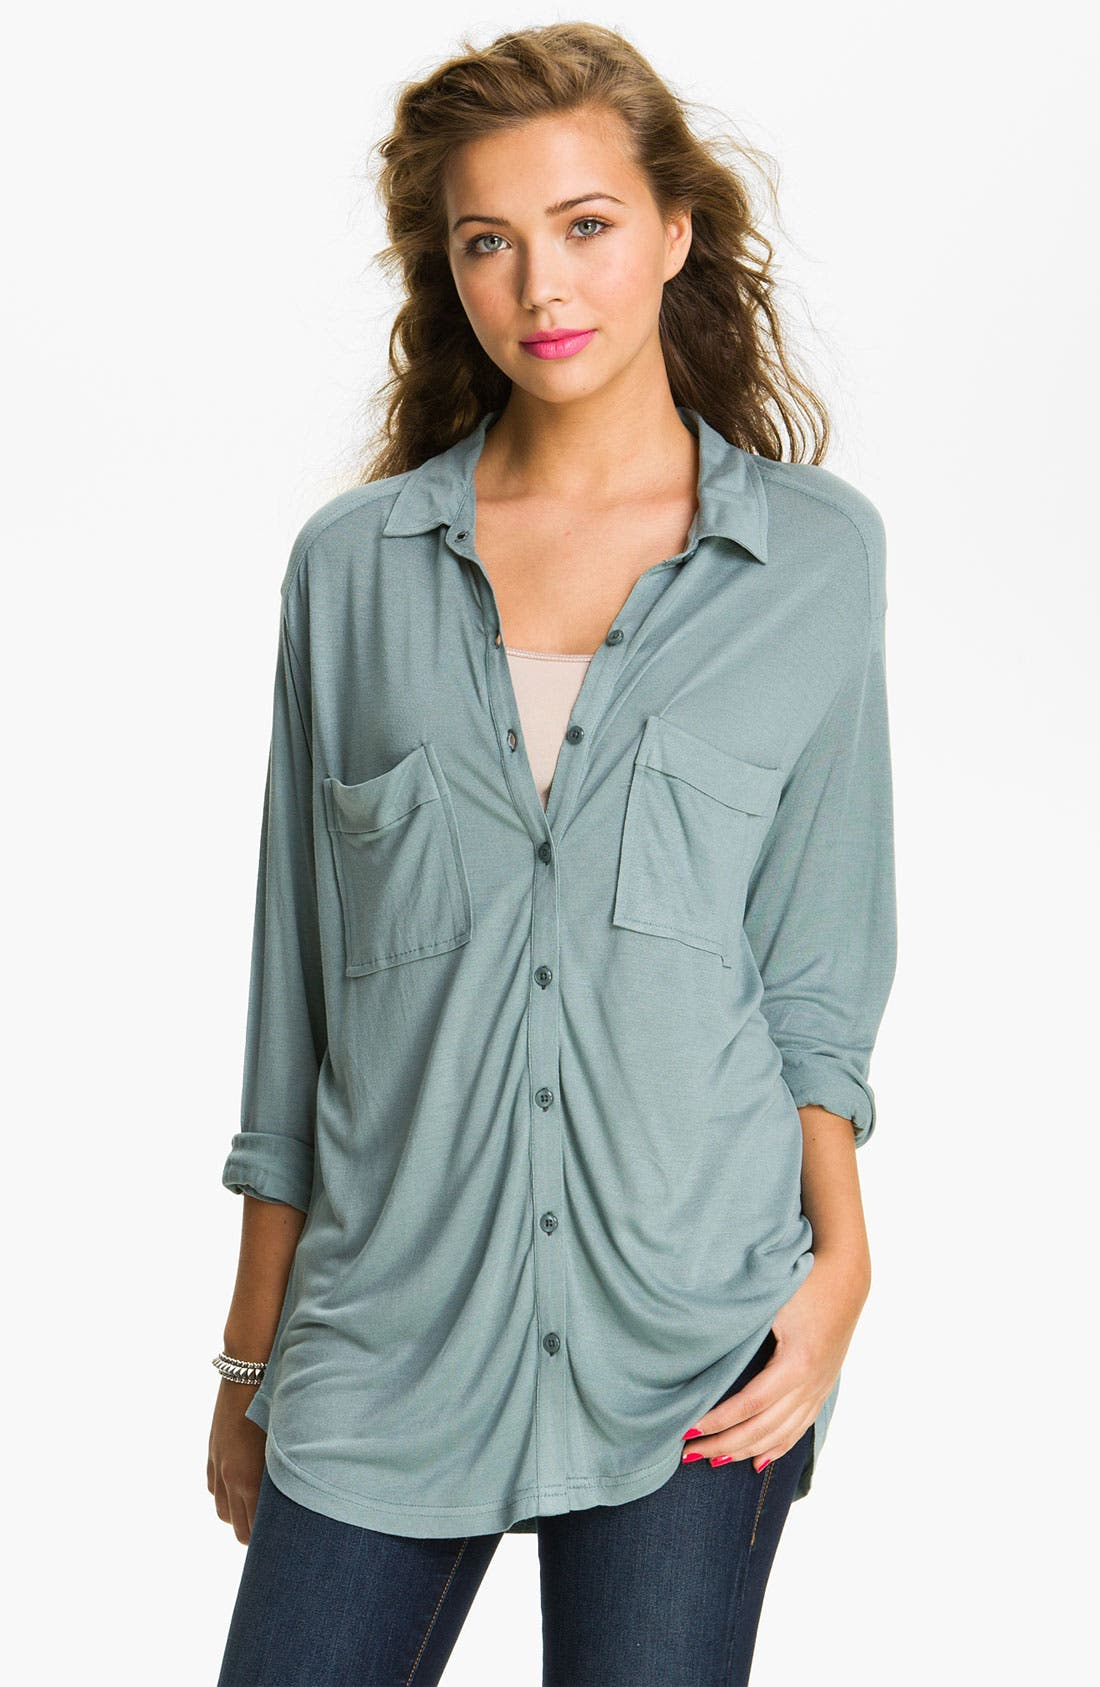 Alternate Image 1 Selected - Frenchi® Two Pocket Top (Juniors)